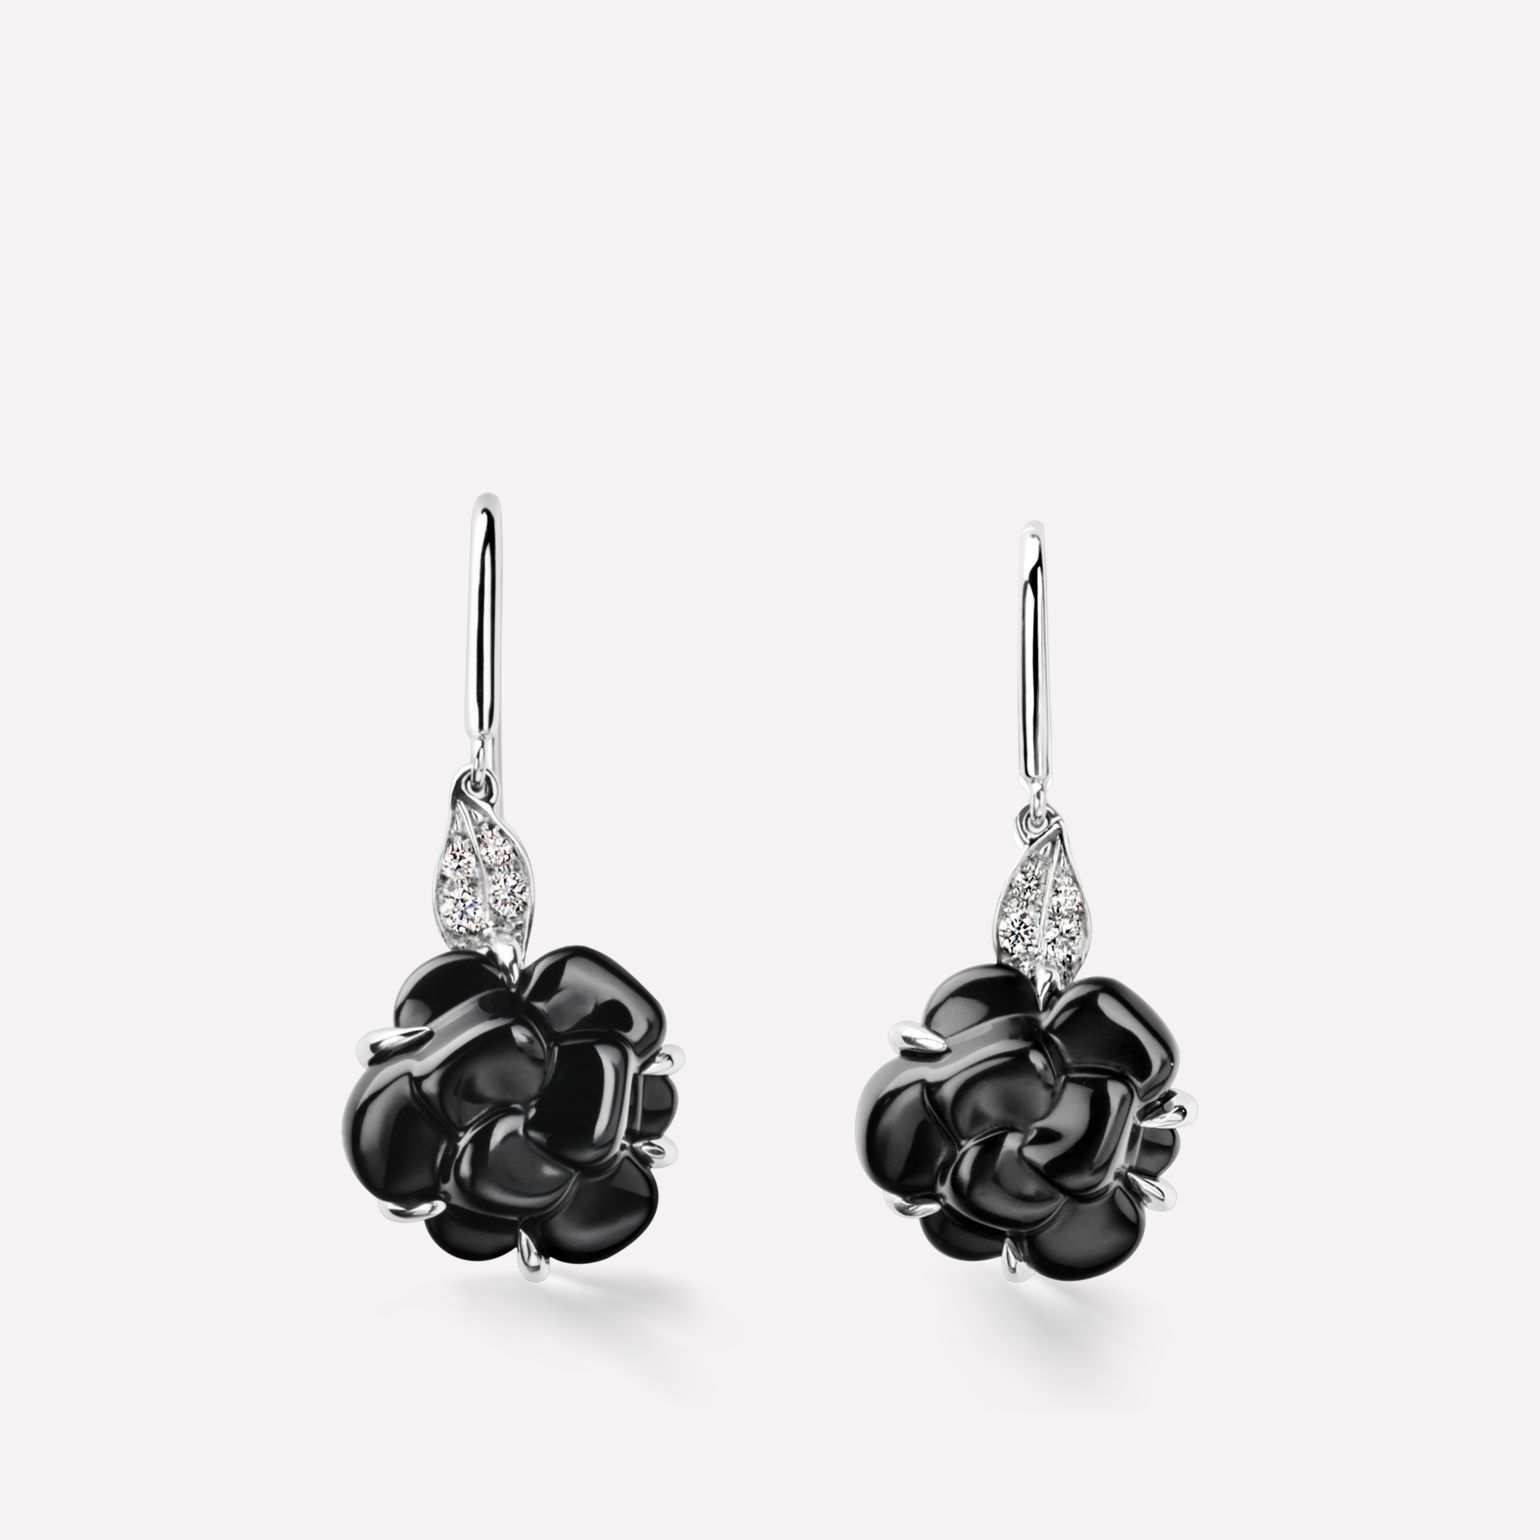 Camélia earrings Camélia Sculpté earrings in black onyx, 18K white gold and diamonds